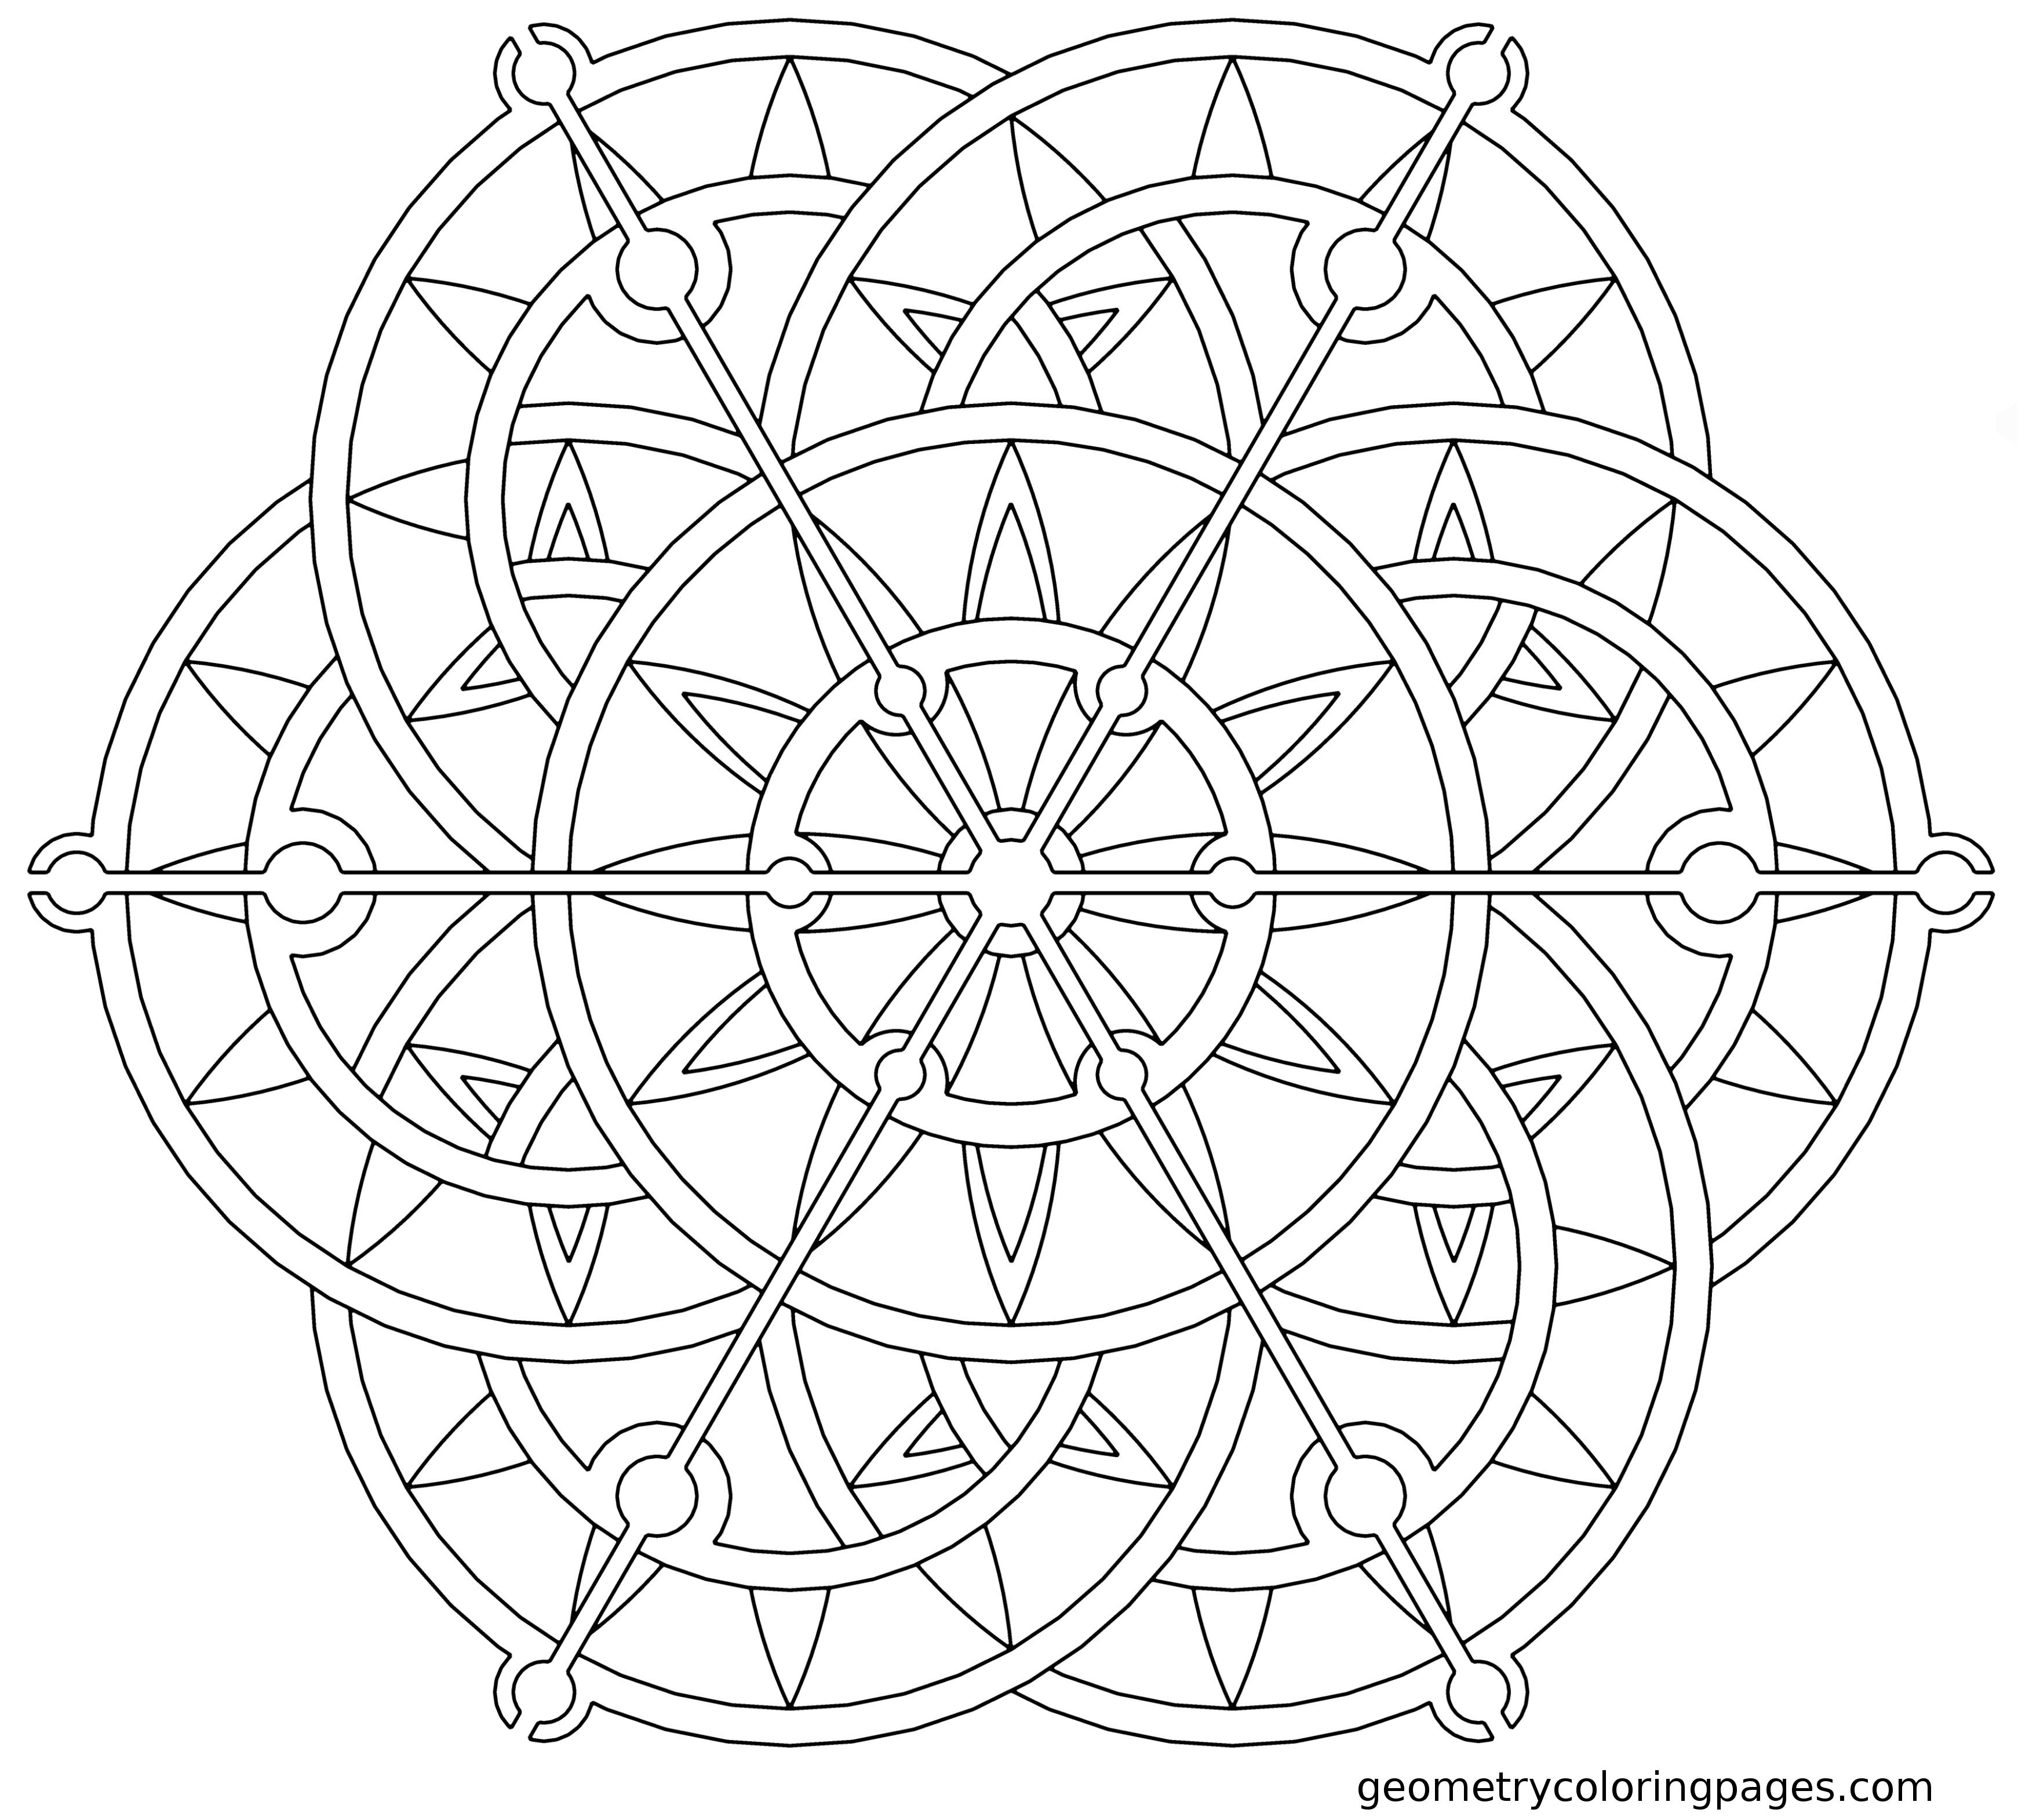 geometric mandala coloring pages coloring home. Black Bedroom Furniture Sets. Home Design Ideas